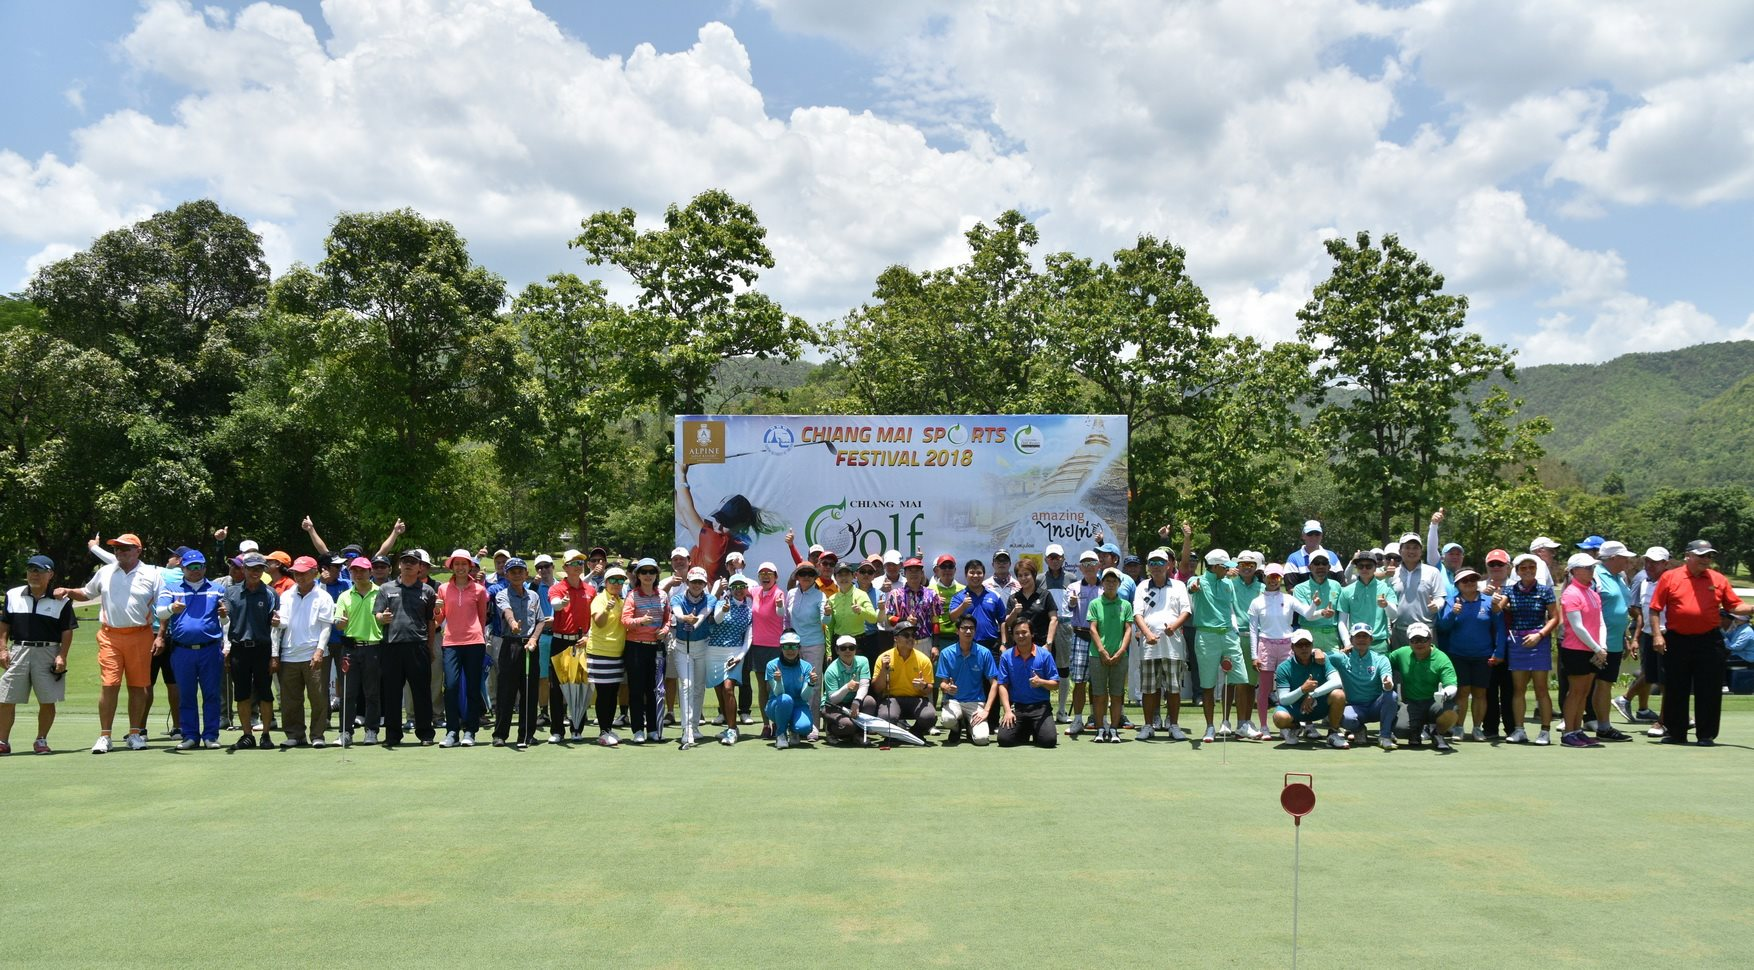 Chiangmai Golf Festival 2018 at Alpinegolfresort Chiangmai